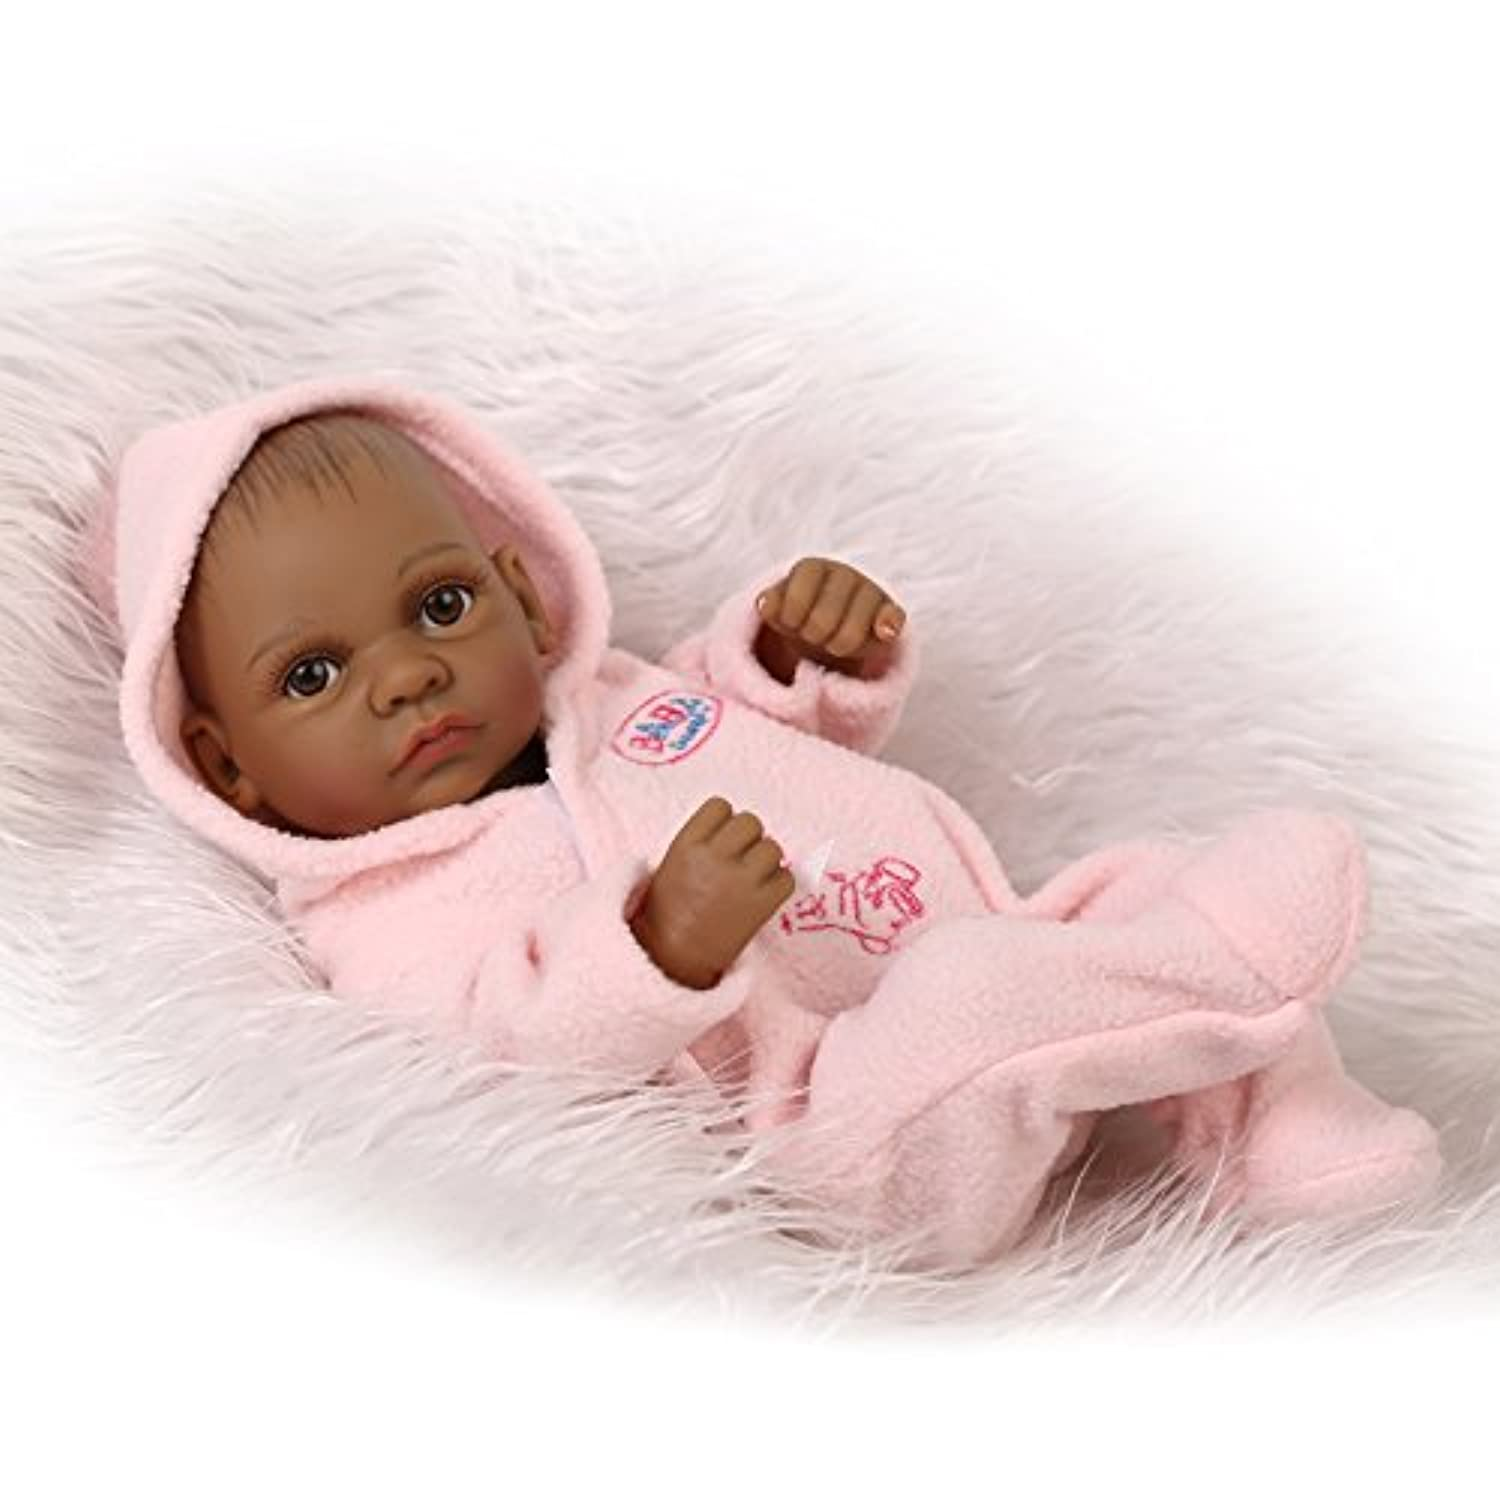 Mini Black Indian Real Lifelike Reborn Baby Doll Full Body Vinyl Silicone Realistic Looking 10